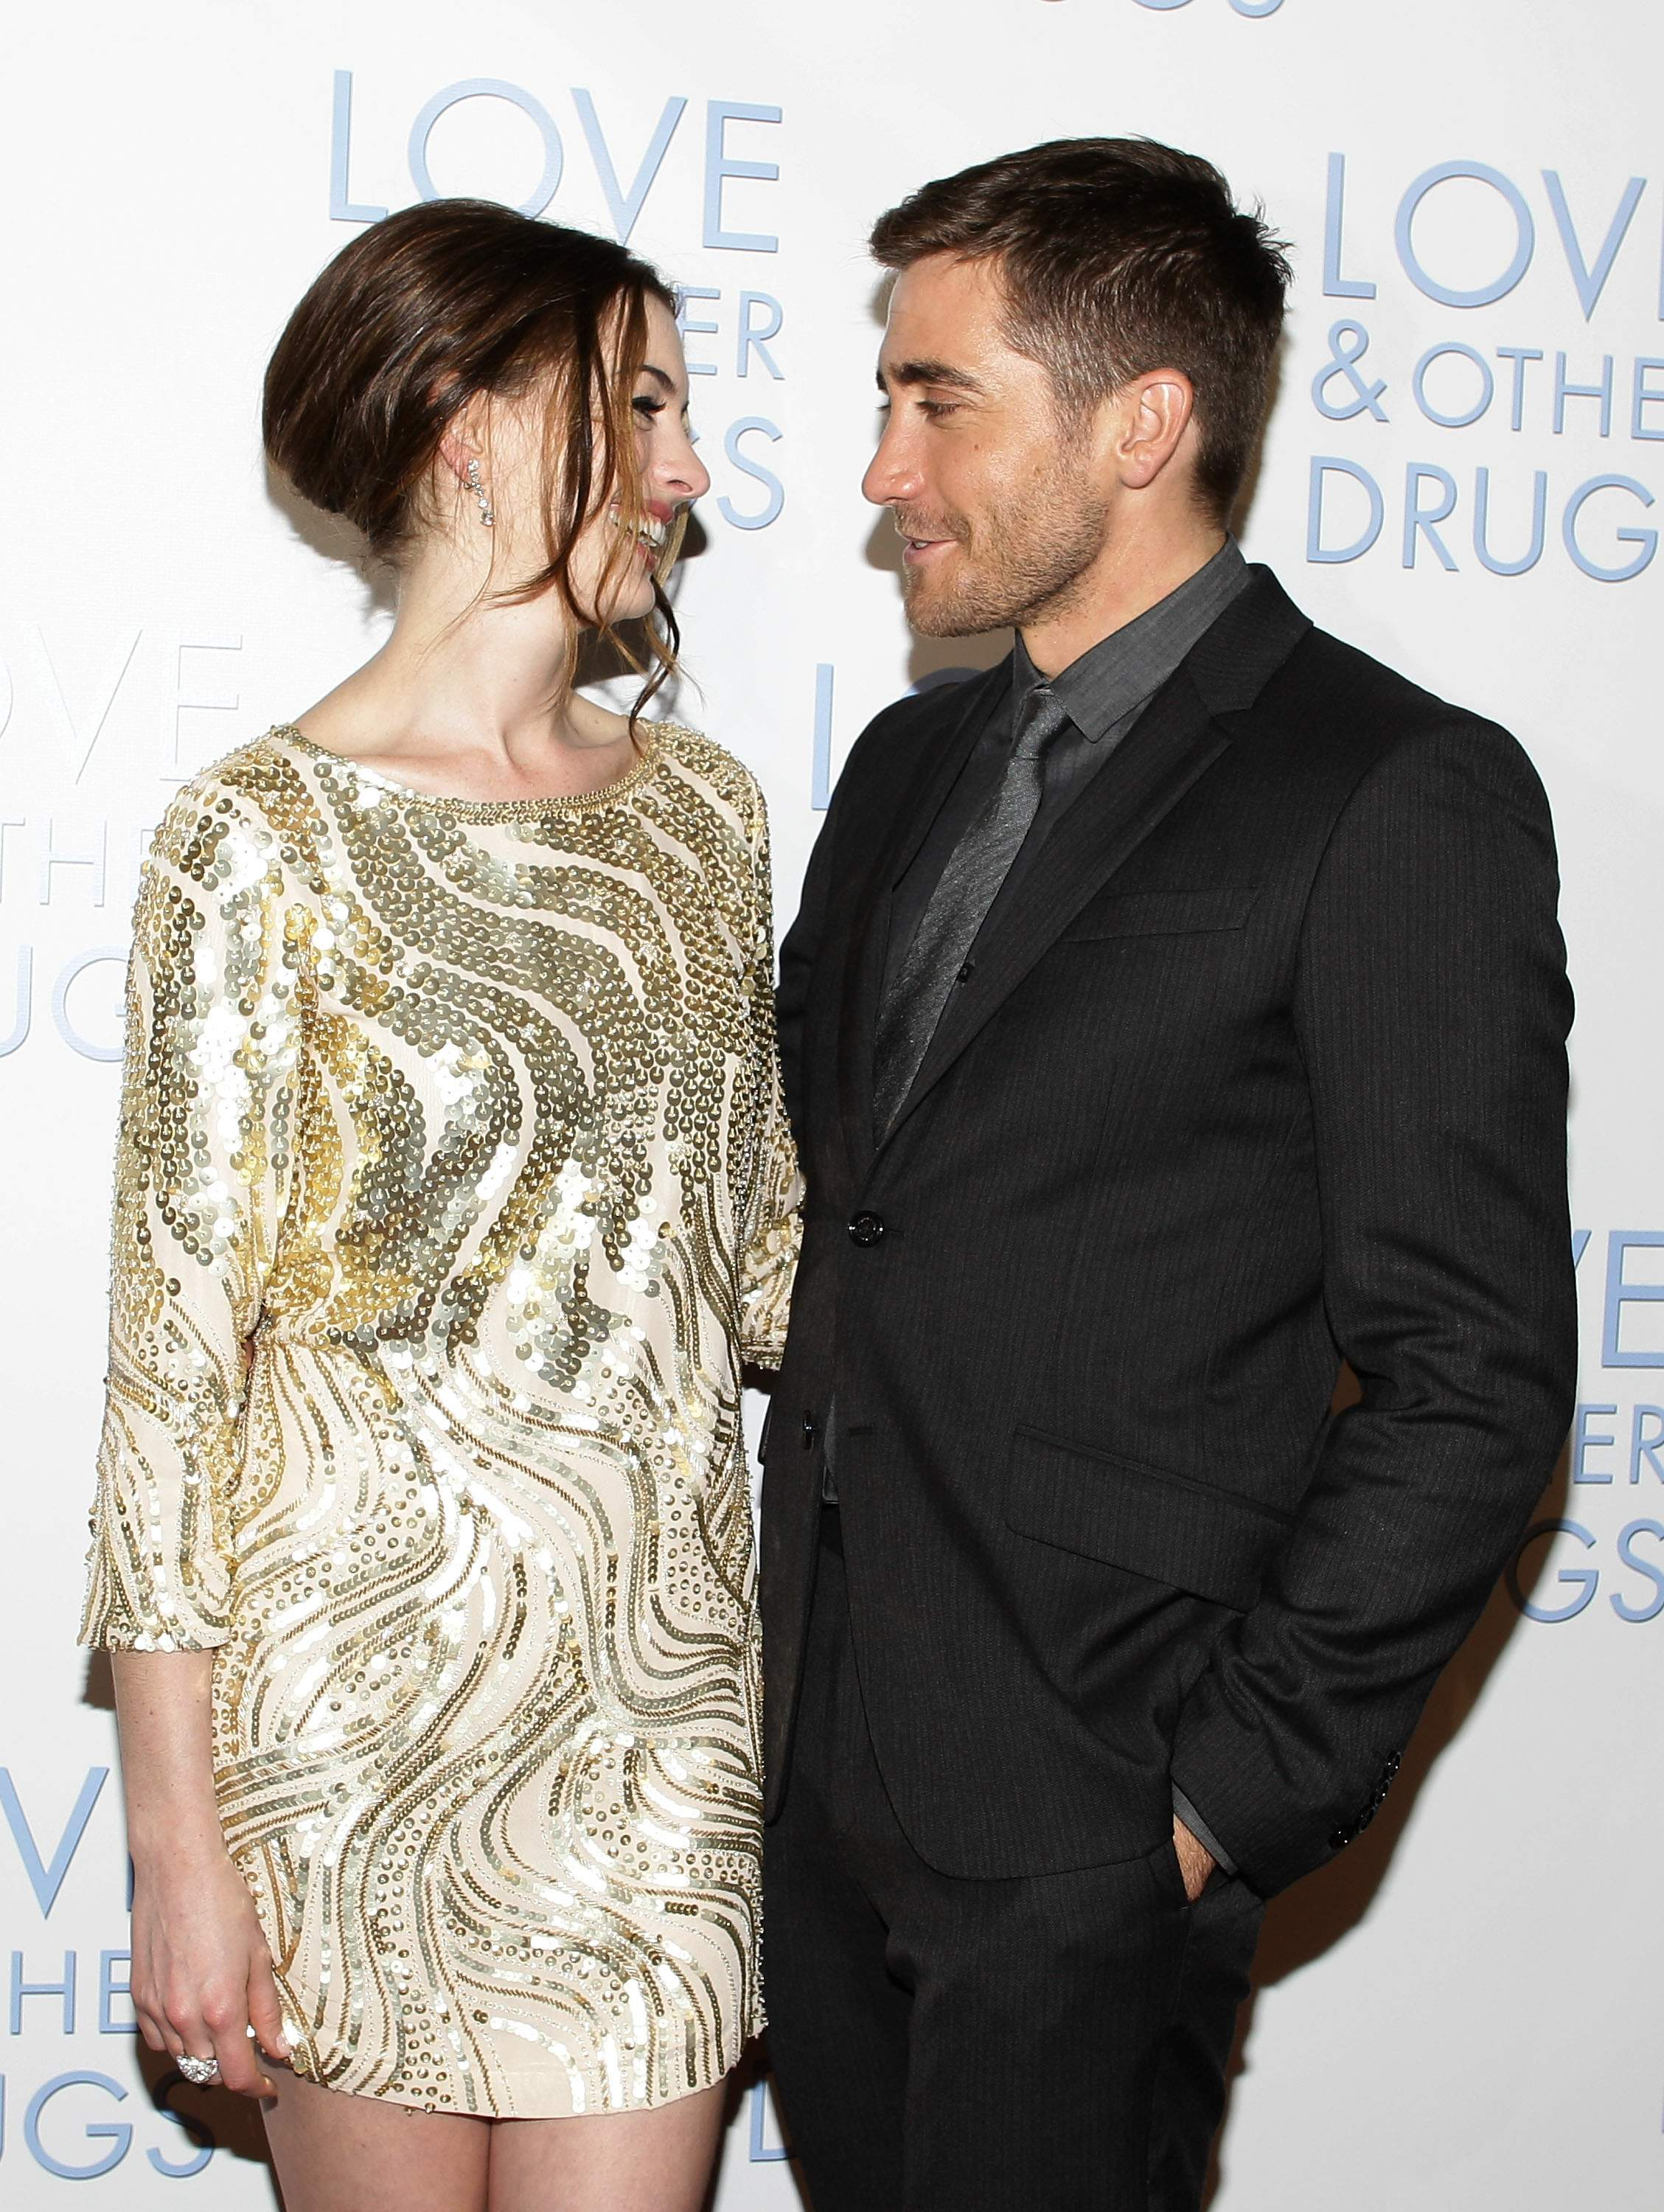 21864_Anne_Hathaway_Love_And_Other_Drugs_Sydney_Premiere_015_122_514lo.jpg